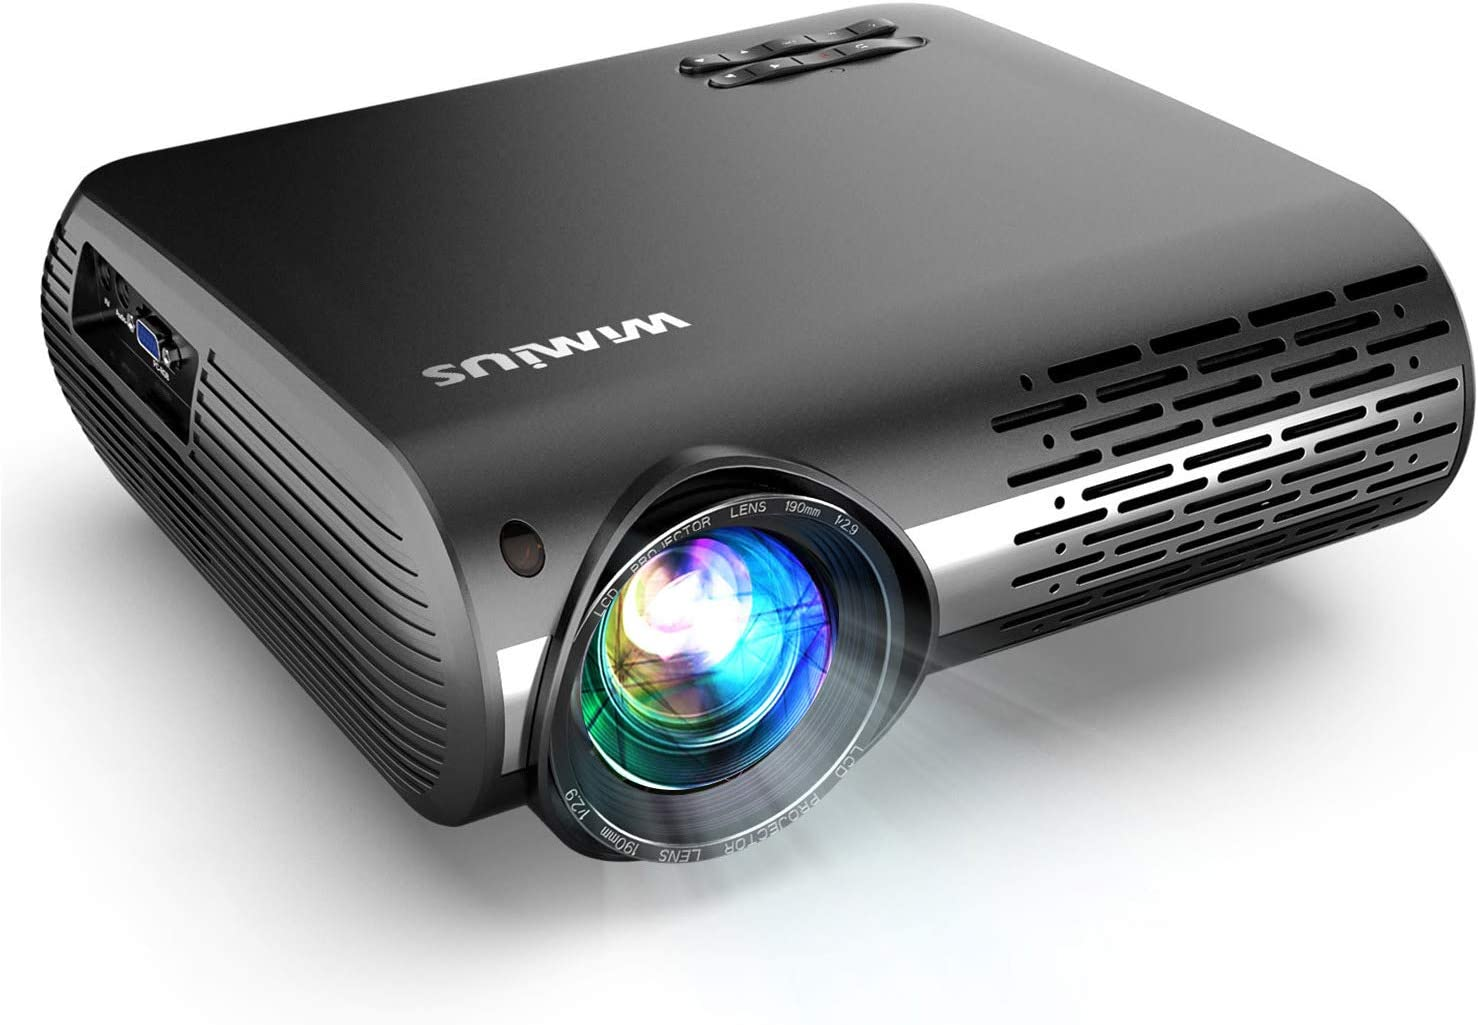 Smartphones for Home Theater Projector PS3 Compatible with TV Stick HDMI VGA WiMiUS 3500 Lumens Video Projector Support 200 Display Full HD 1080P 50,000 Hours LED Video Projector USB